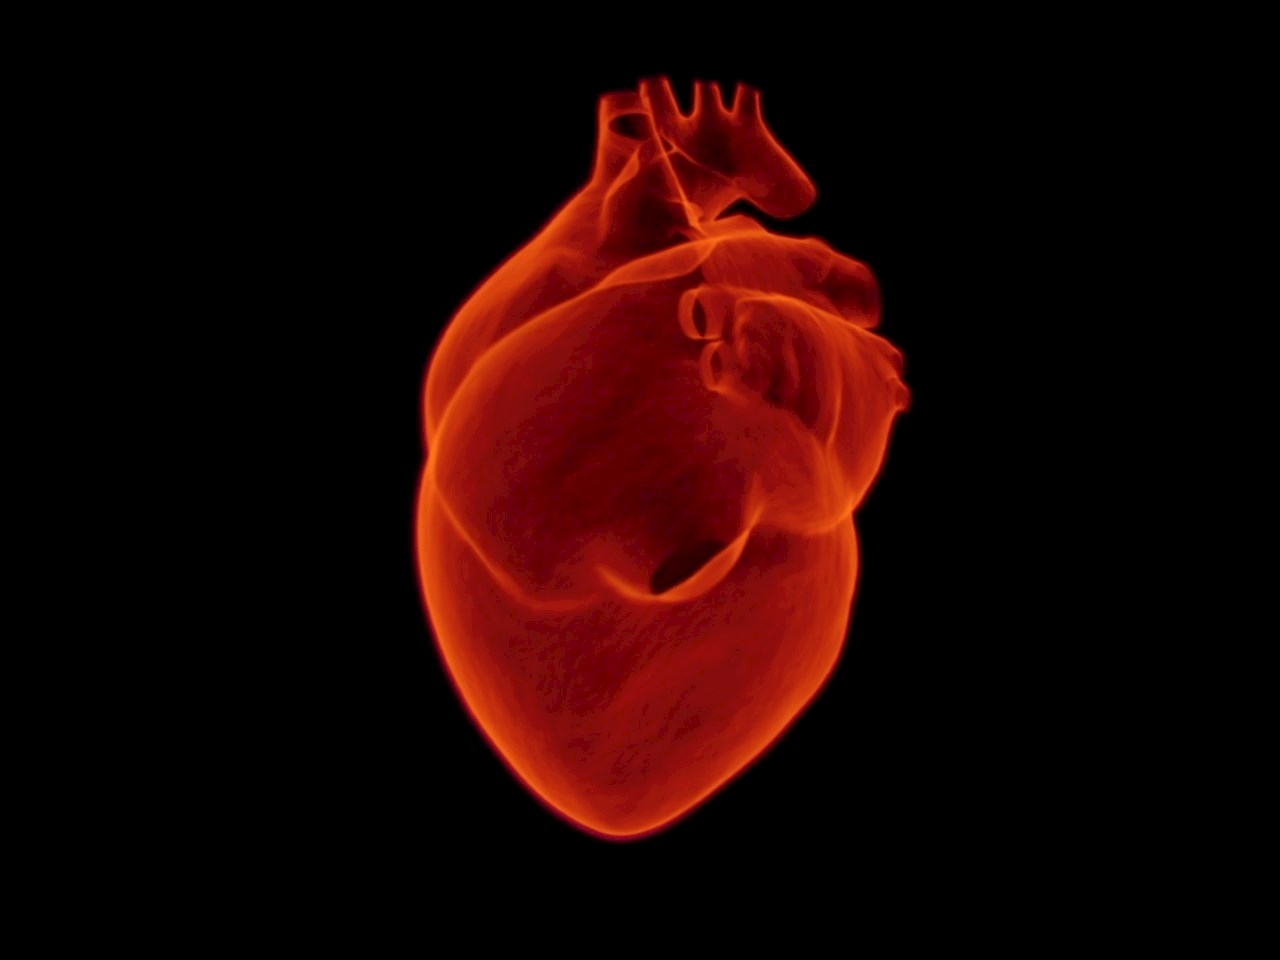 Artistic illustration of a heart